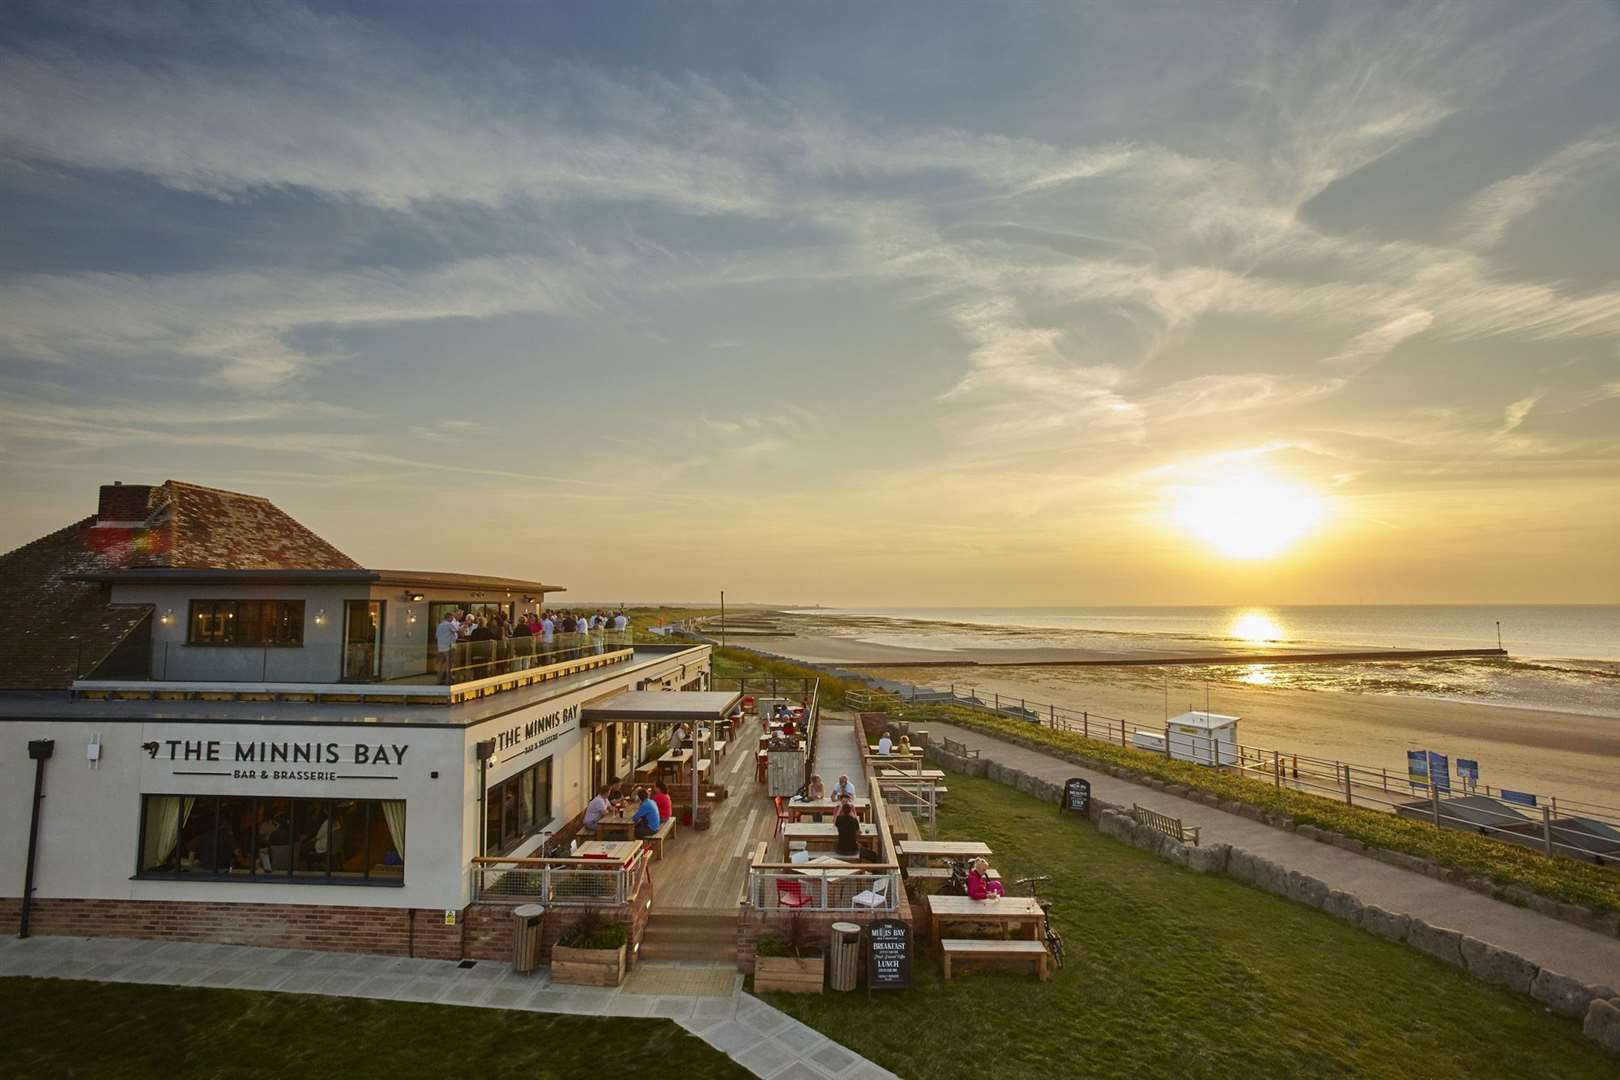 Packing the wow factor... the Minnis Bay Bar and Brasserie